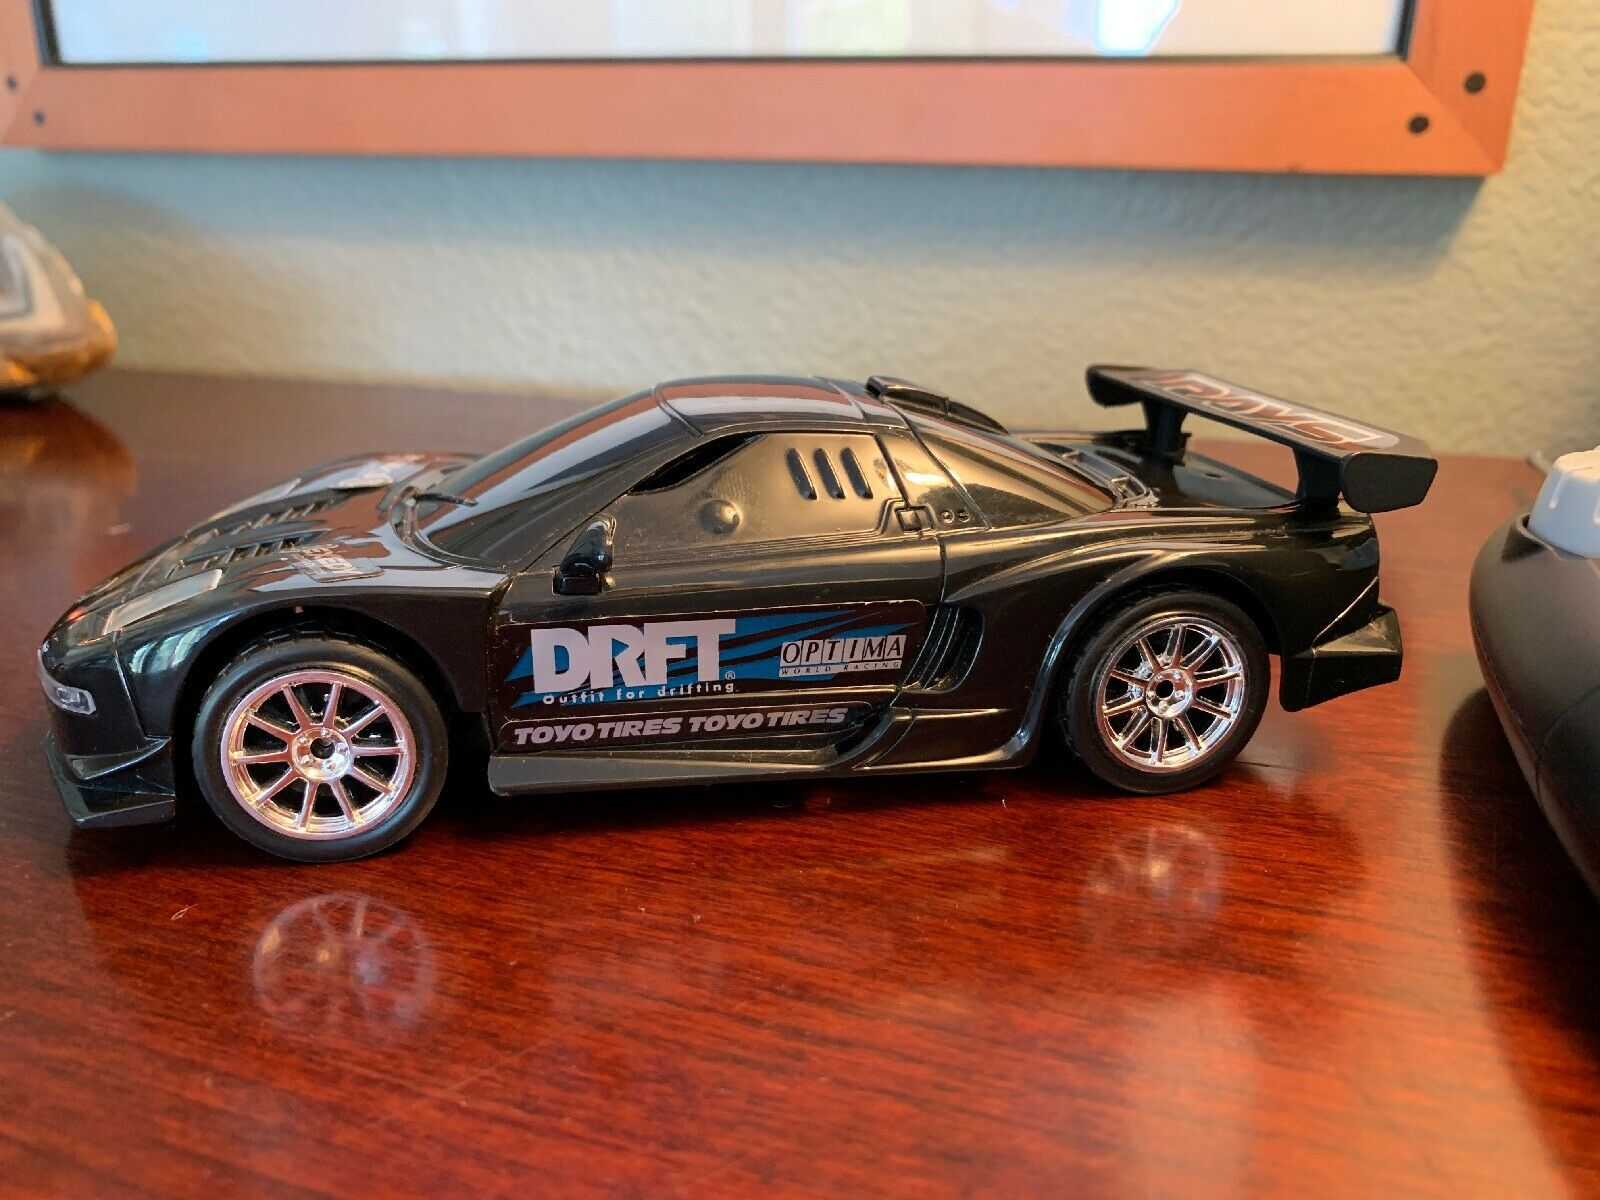 Fast and the Furious 49mhz Nikko 2003 Acura NSX RC DRFT Race Car Vintage Rare